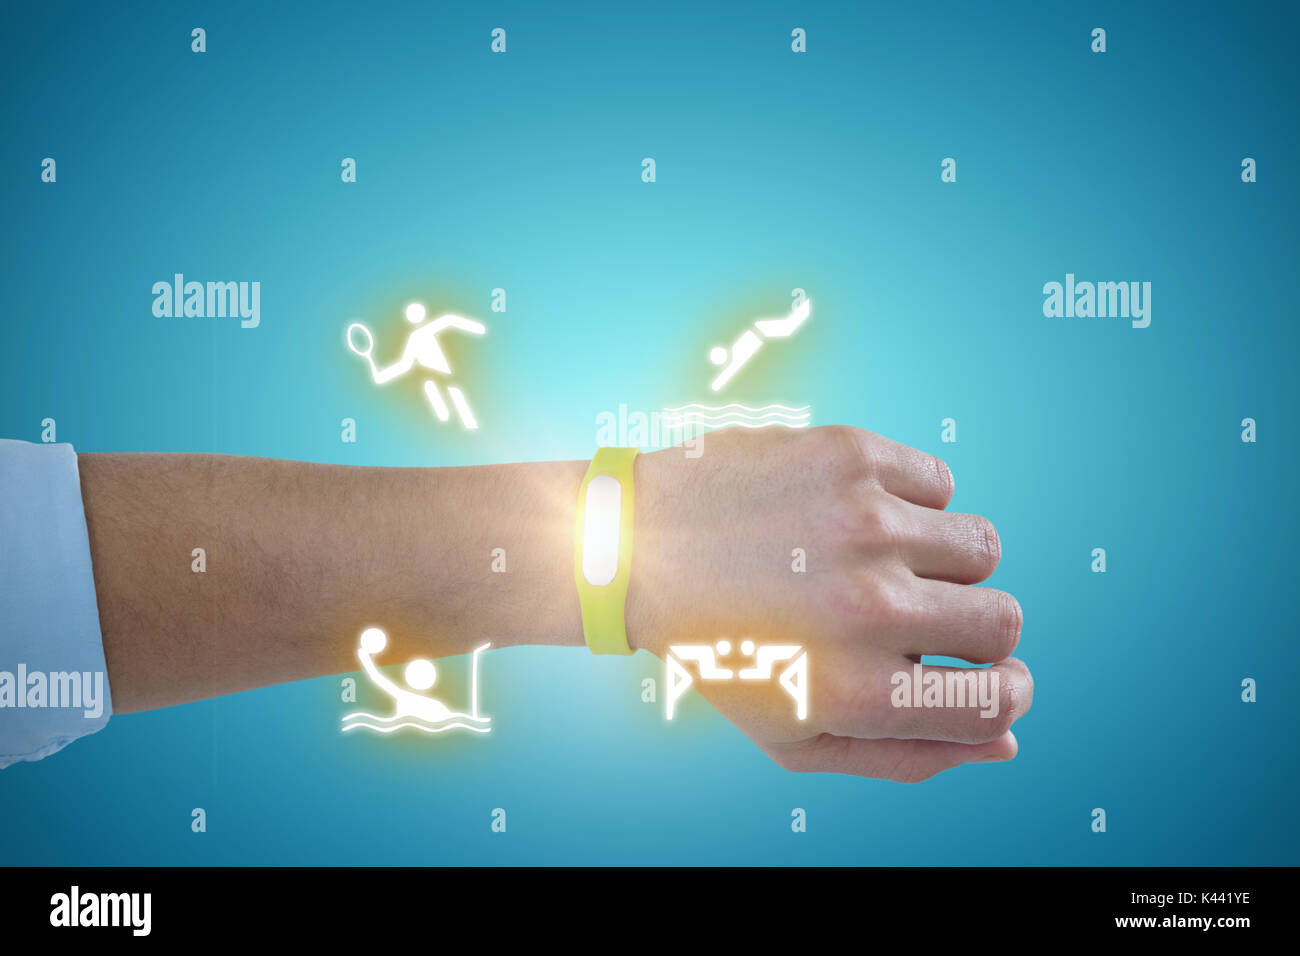 Hand of man wearing green fitness band against blue vignette background - Stock Image